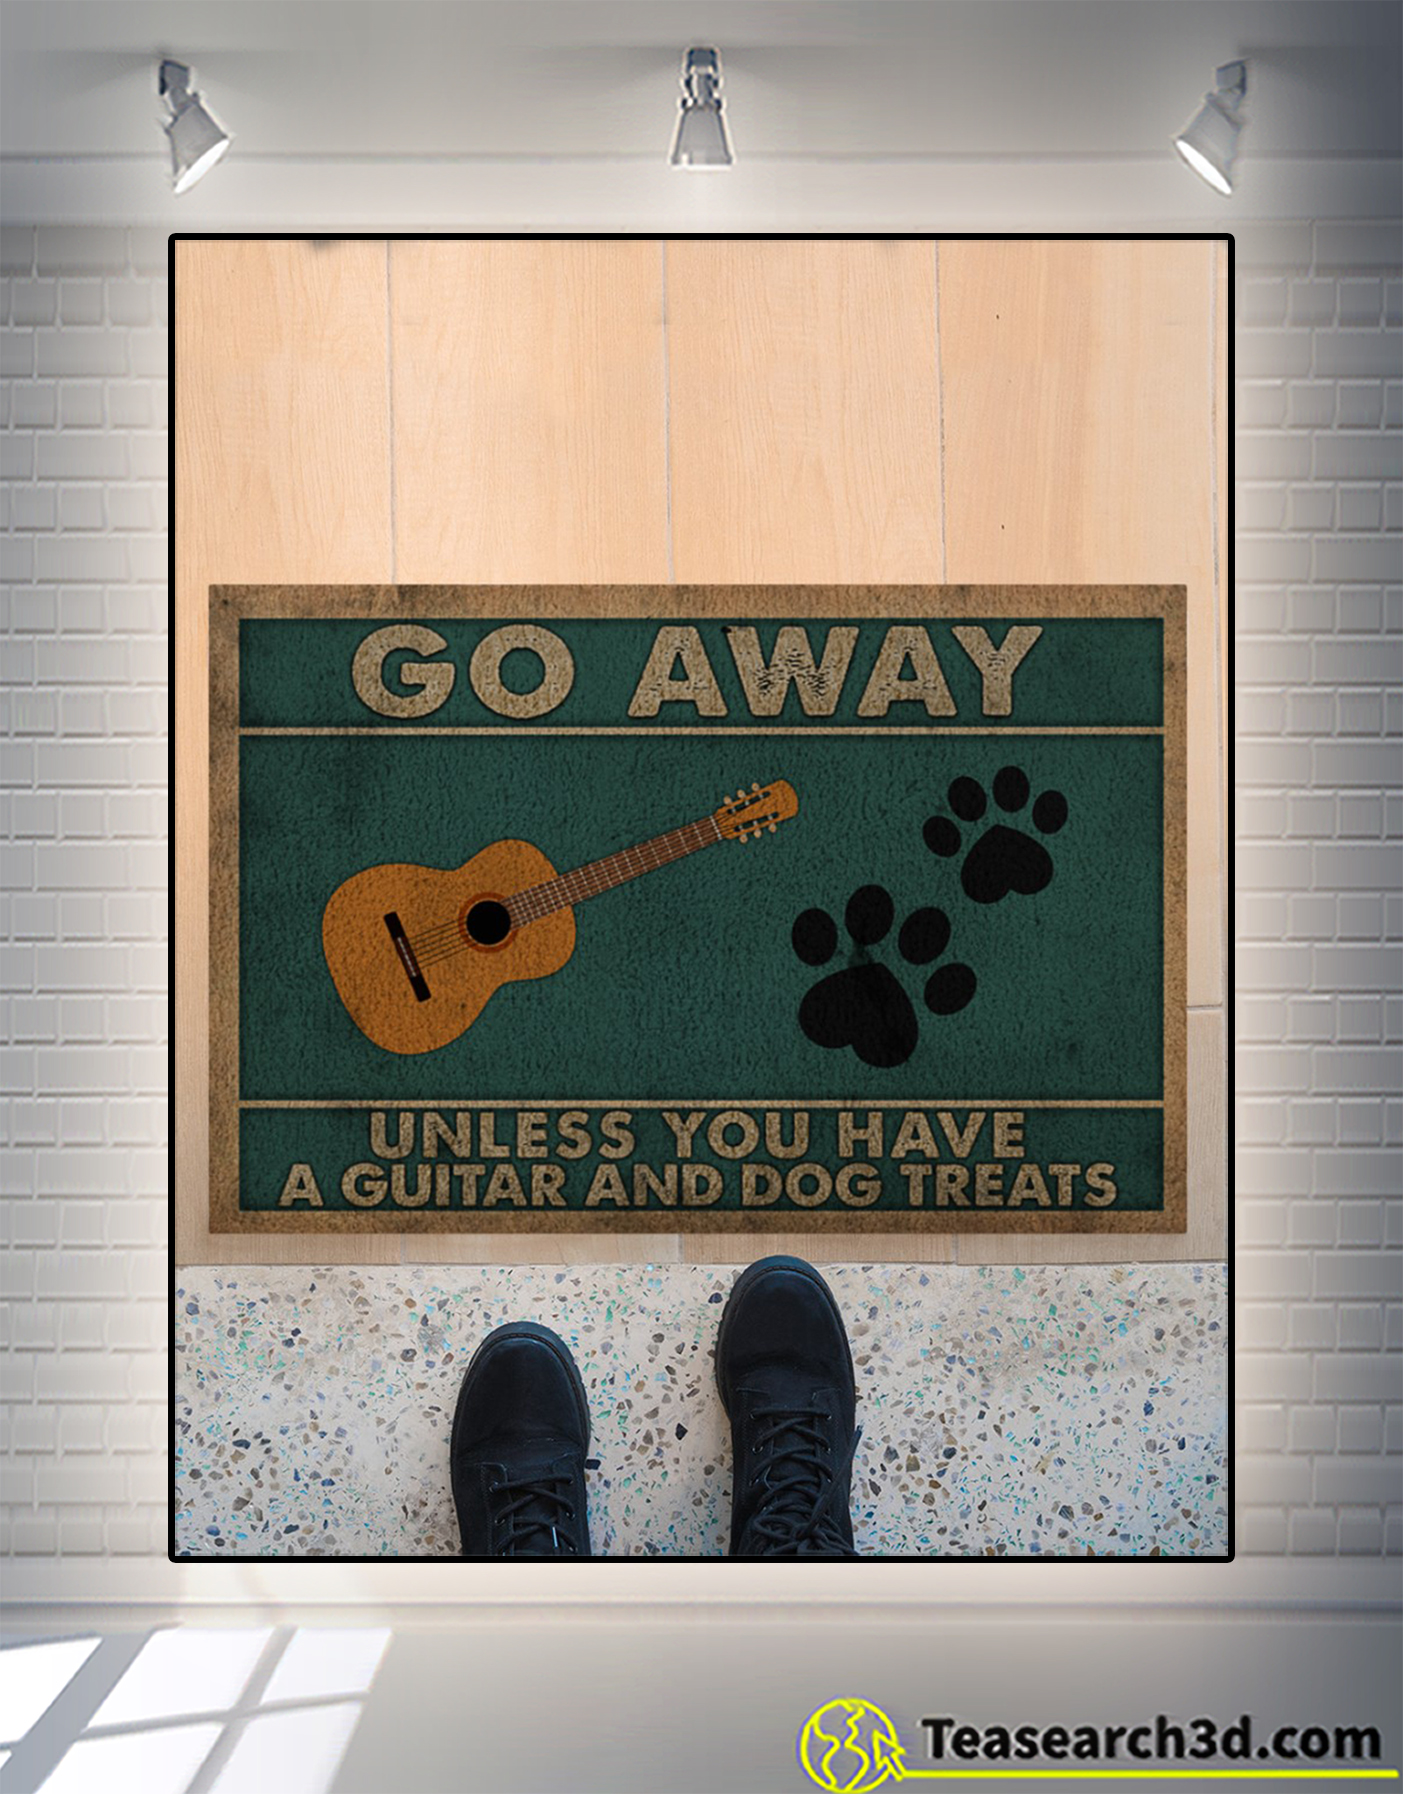 Go away unless you have a guitar and dog treats doormat